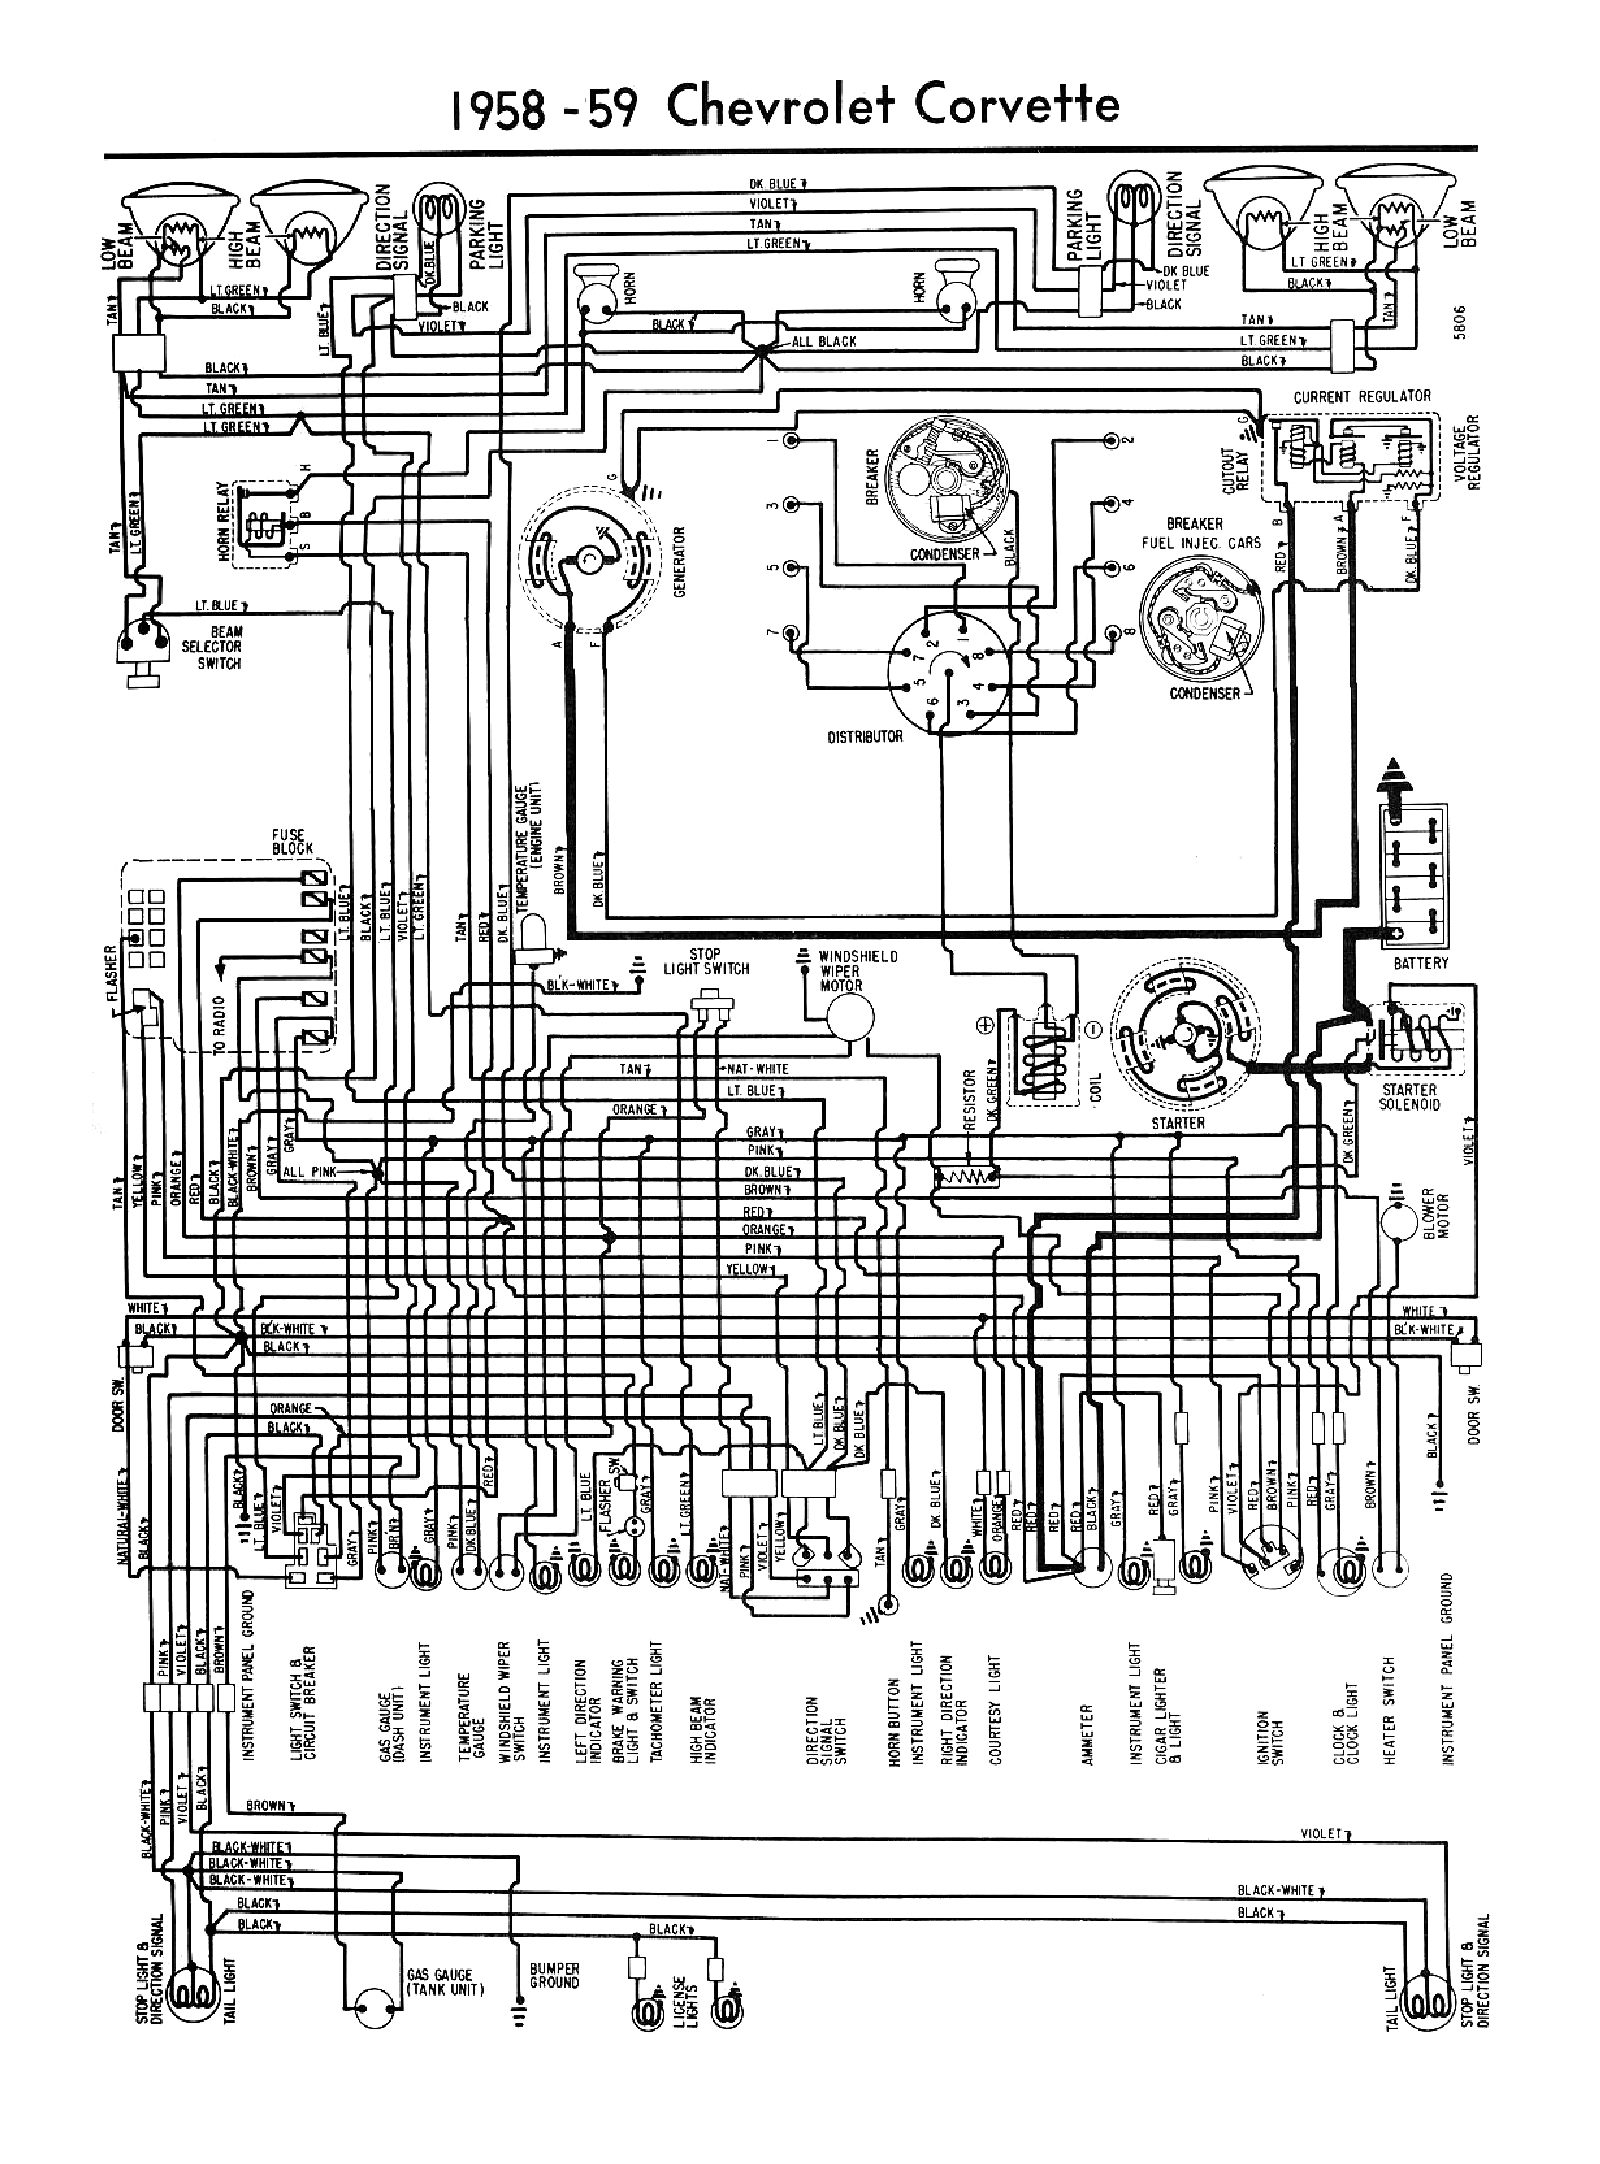 1959, 1959 Car Wiring Diagrams · 1959 Car - 6 Cylinder Wiring · 1959  Corvette Wiring